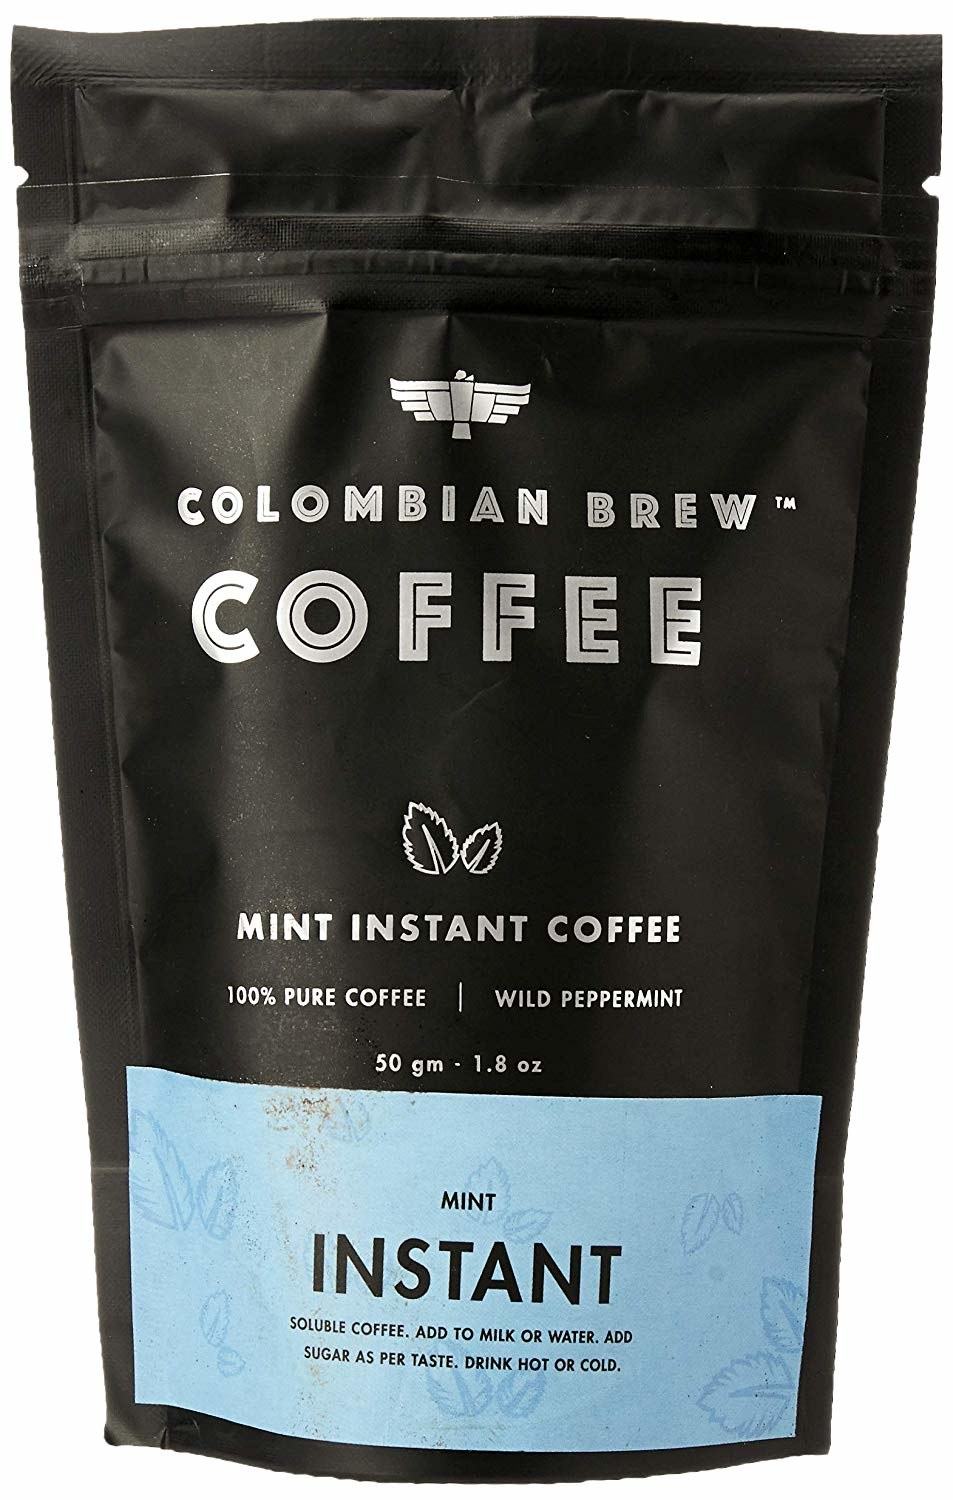 Packaging of the coffee